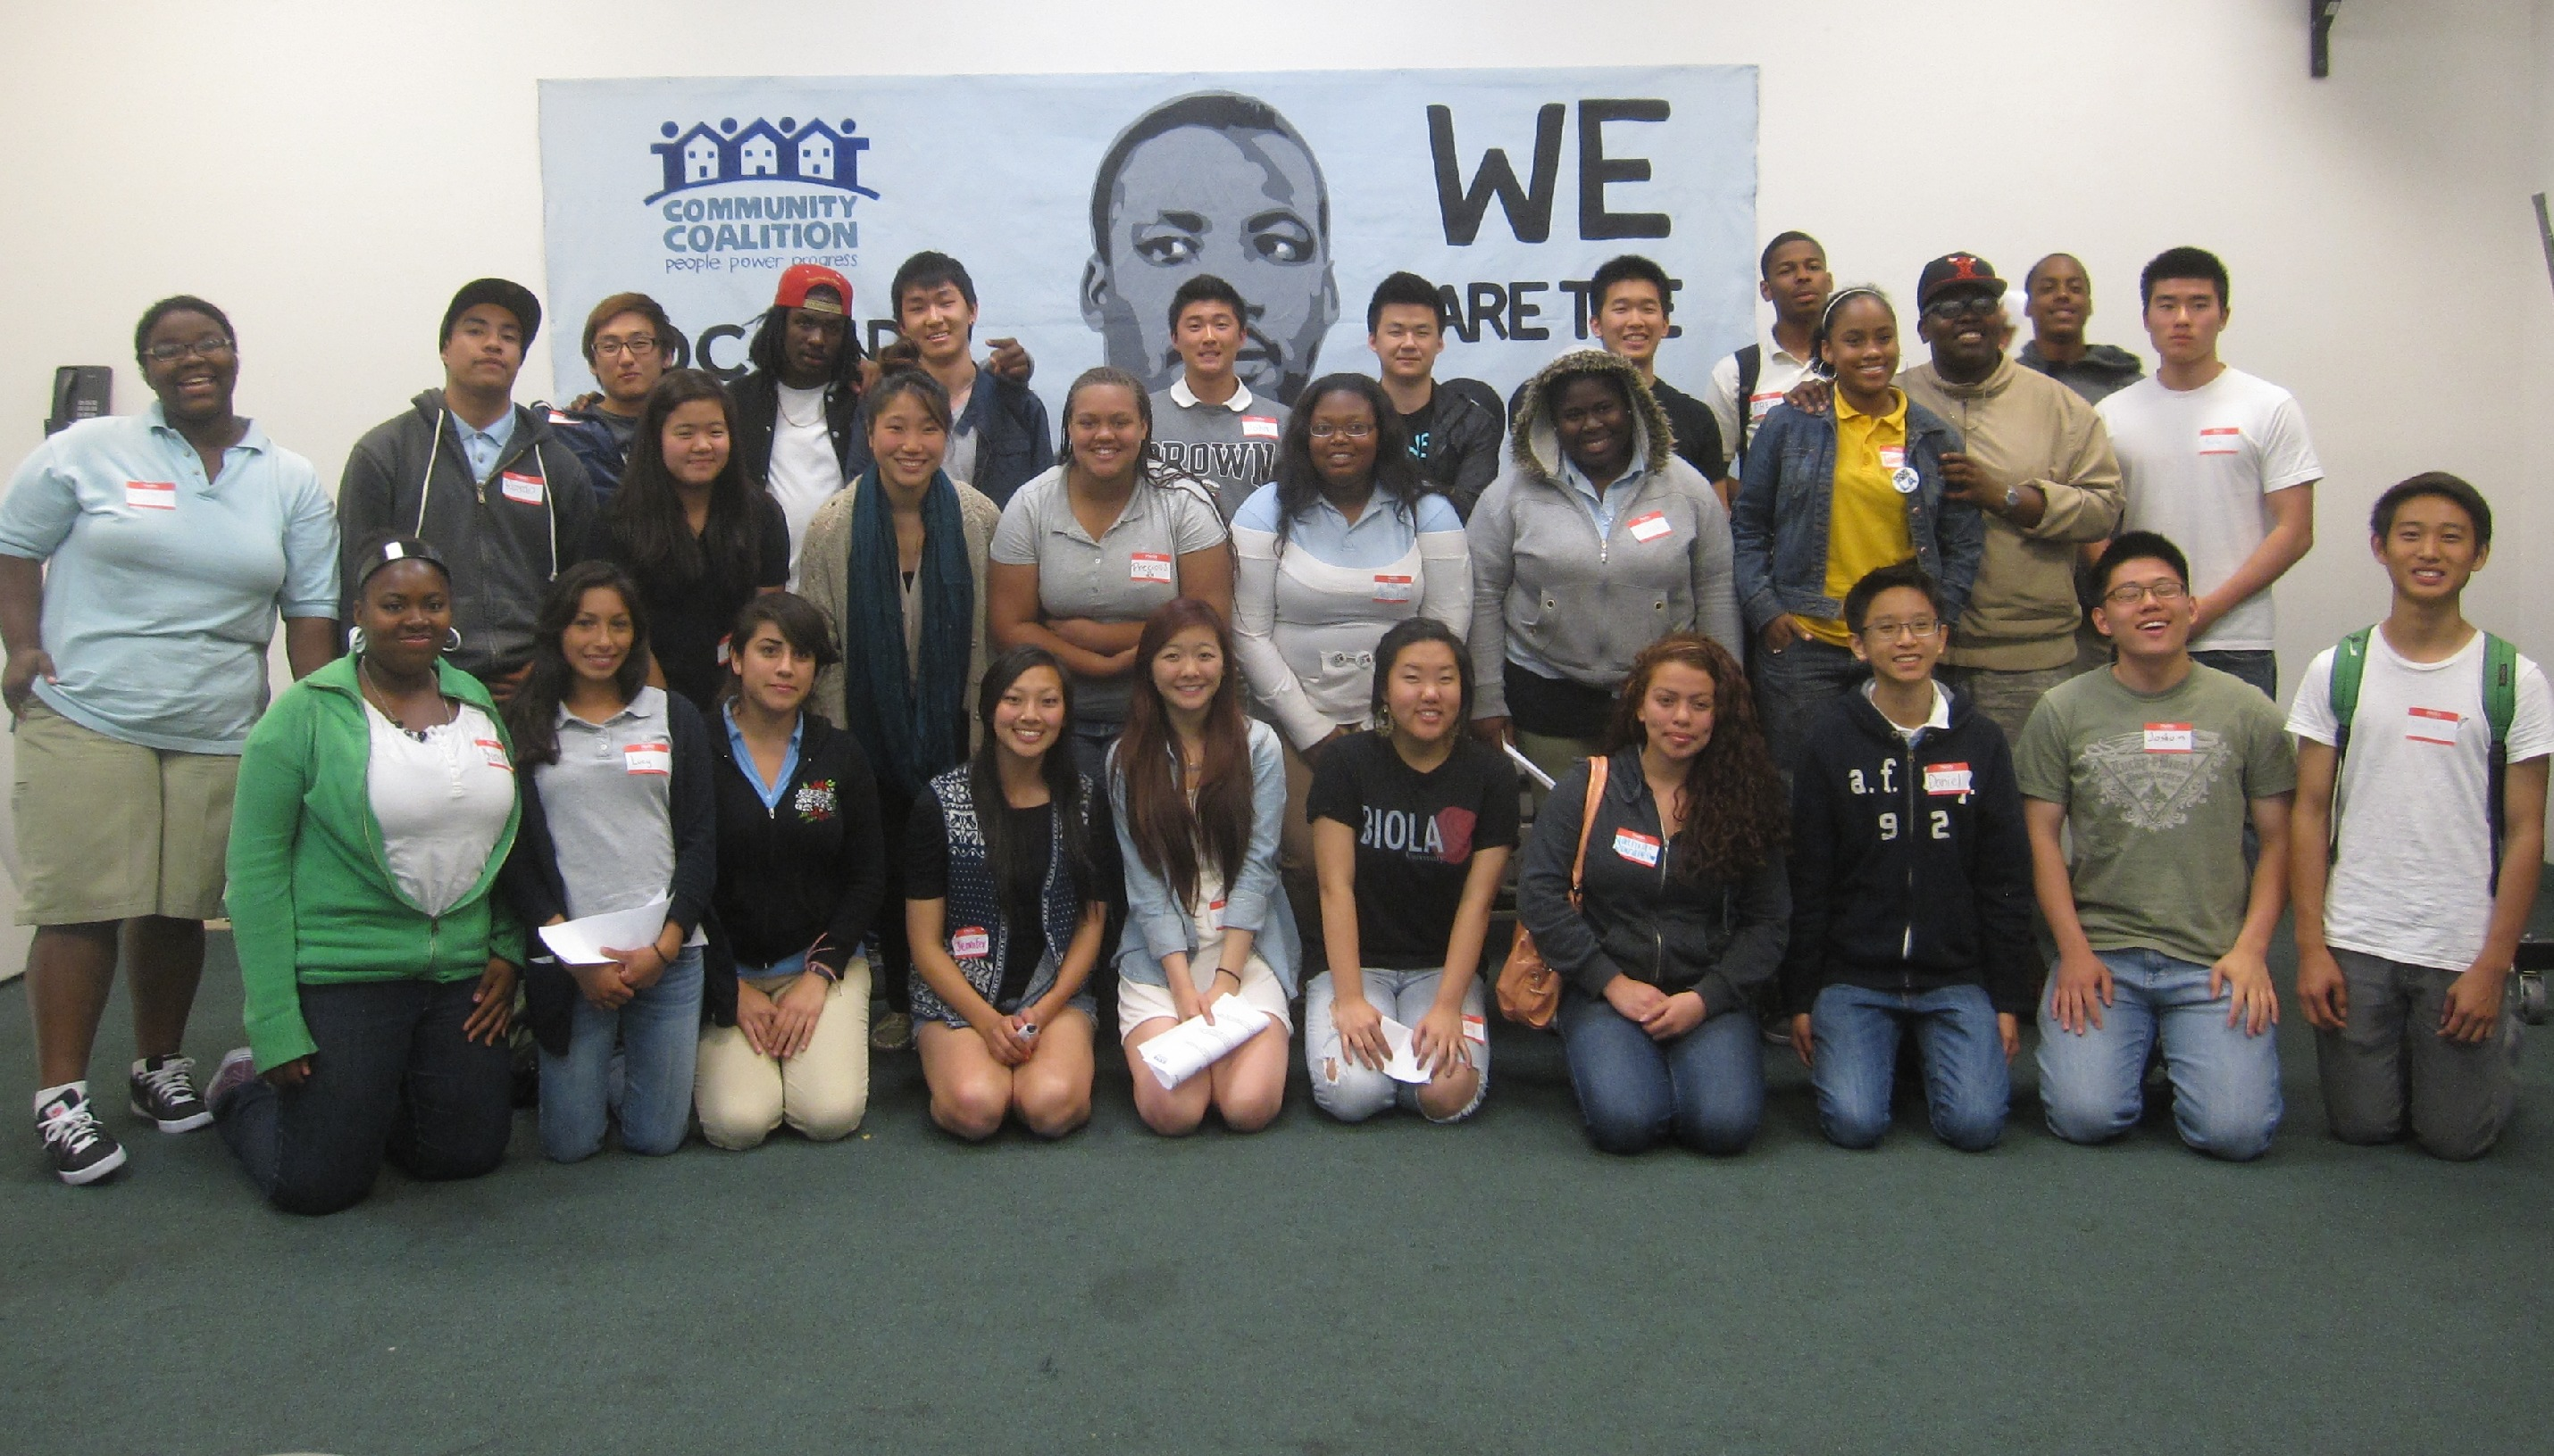 Saigu Youth Workshop Group Photo 4-18-12